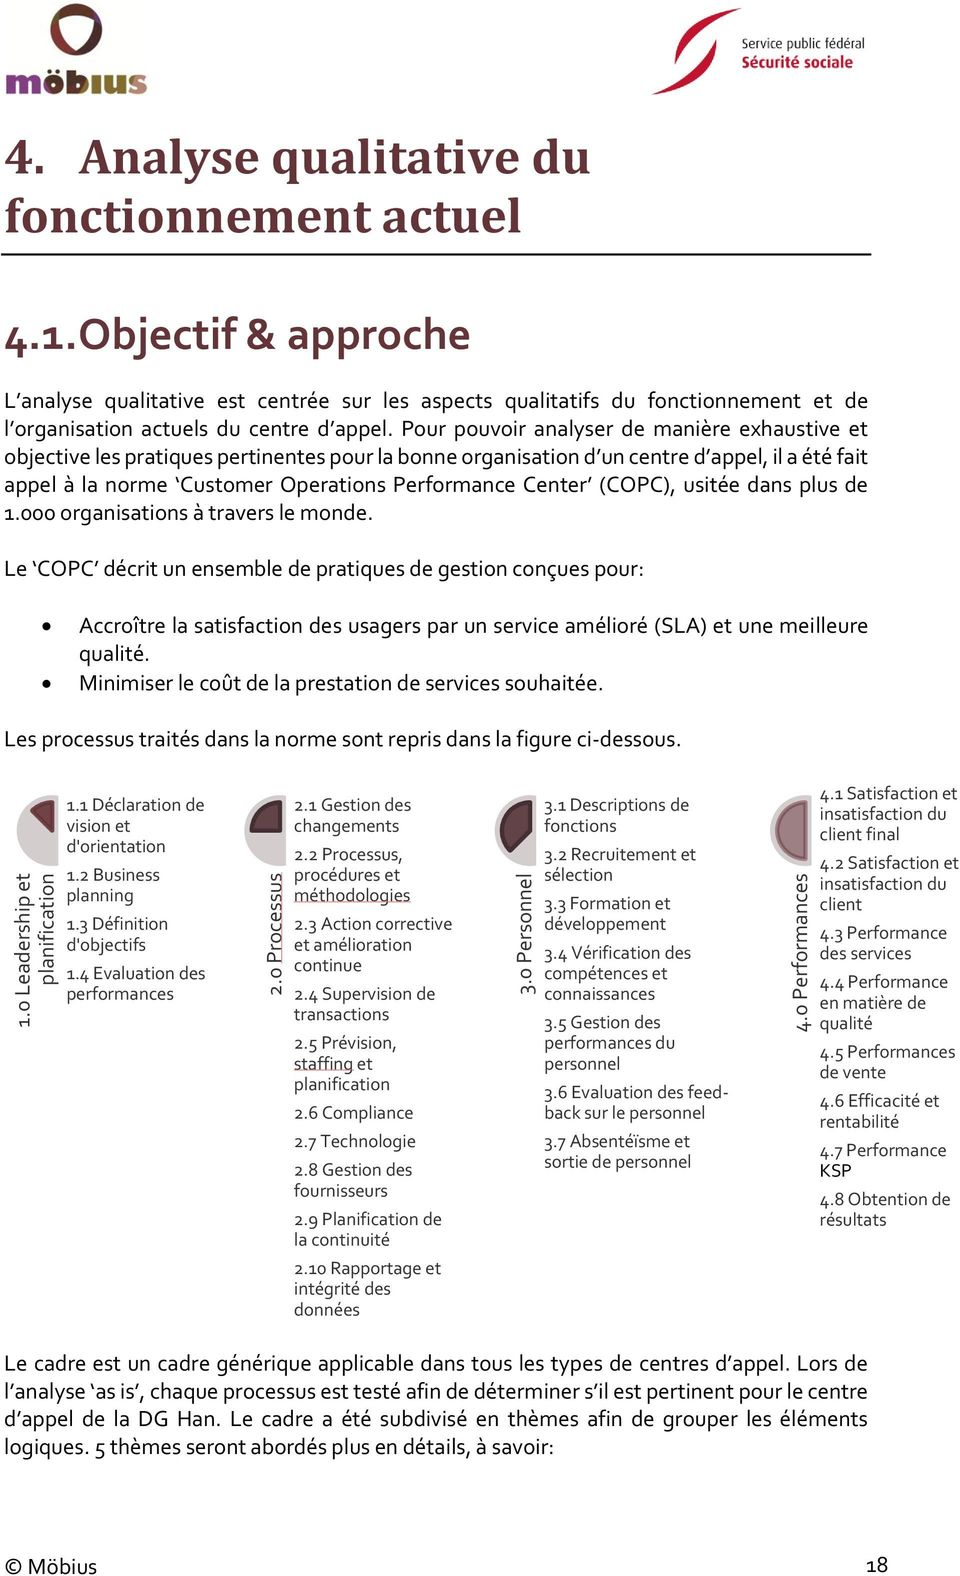 Center (COPC), usitée dans plus de 1.000 organisations à travers le monde.